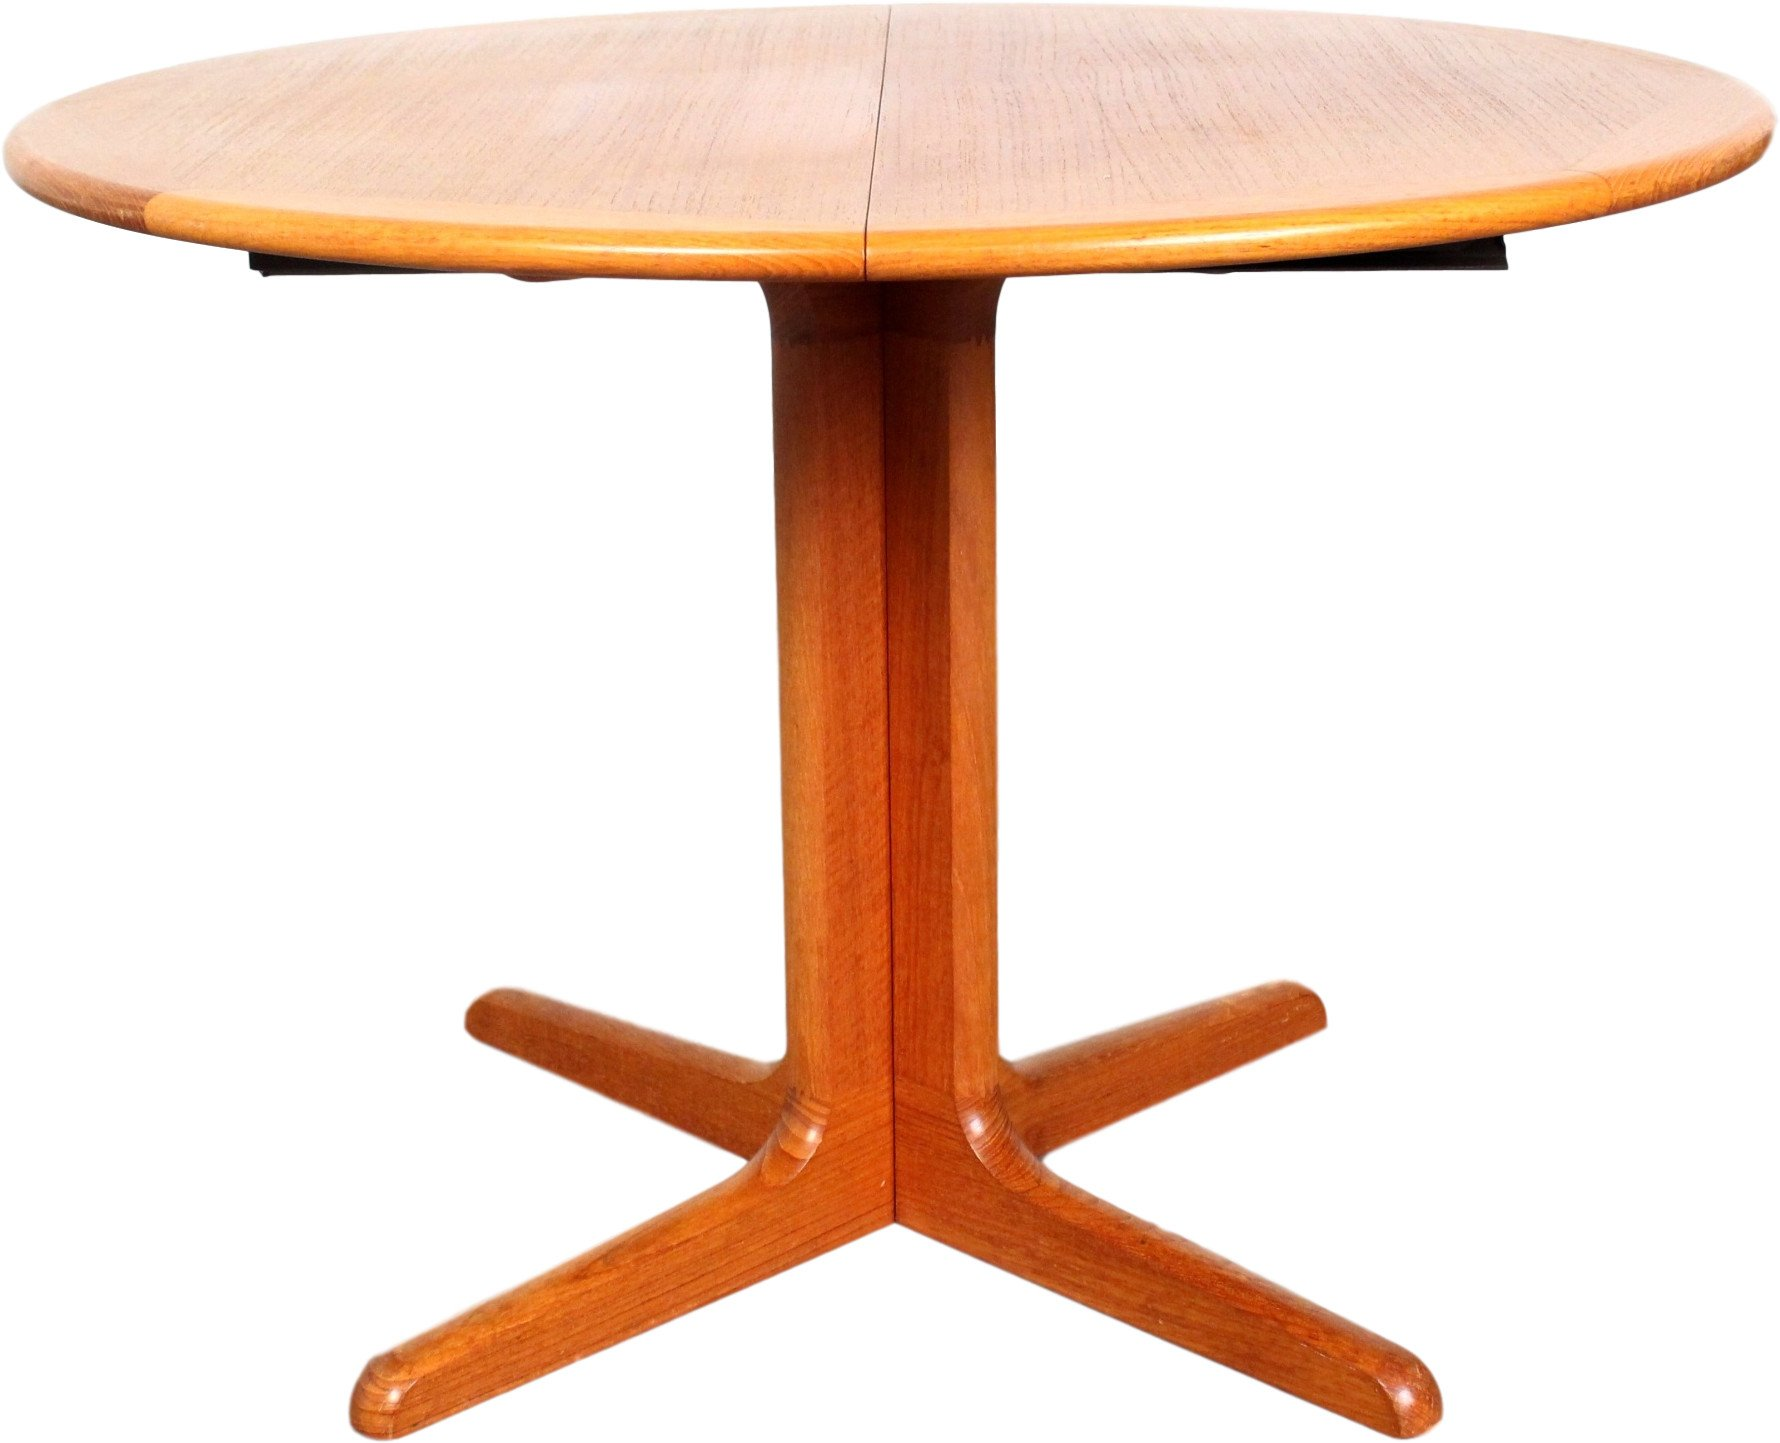 Extendable Table, Denmark, 1960s